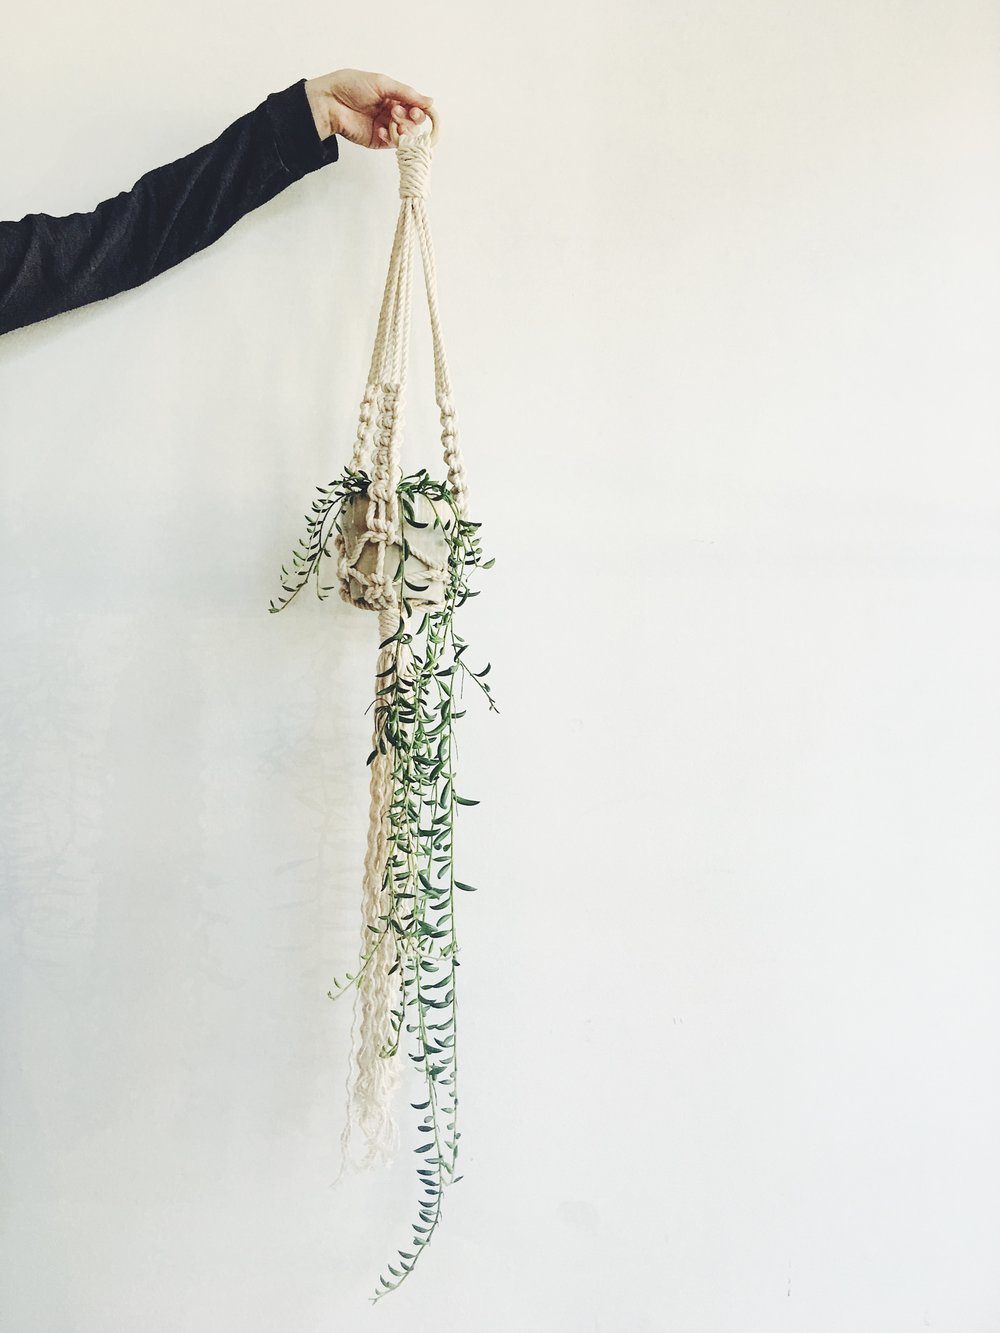 Asheville Folk Macramé plant hanger workshop with Katy Laverdiere & Christina Forêt.